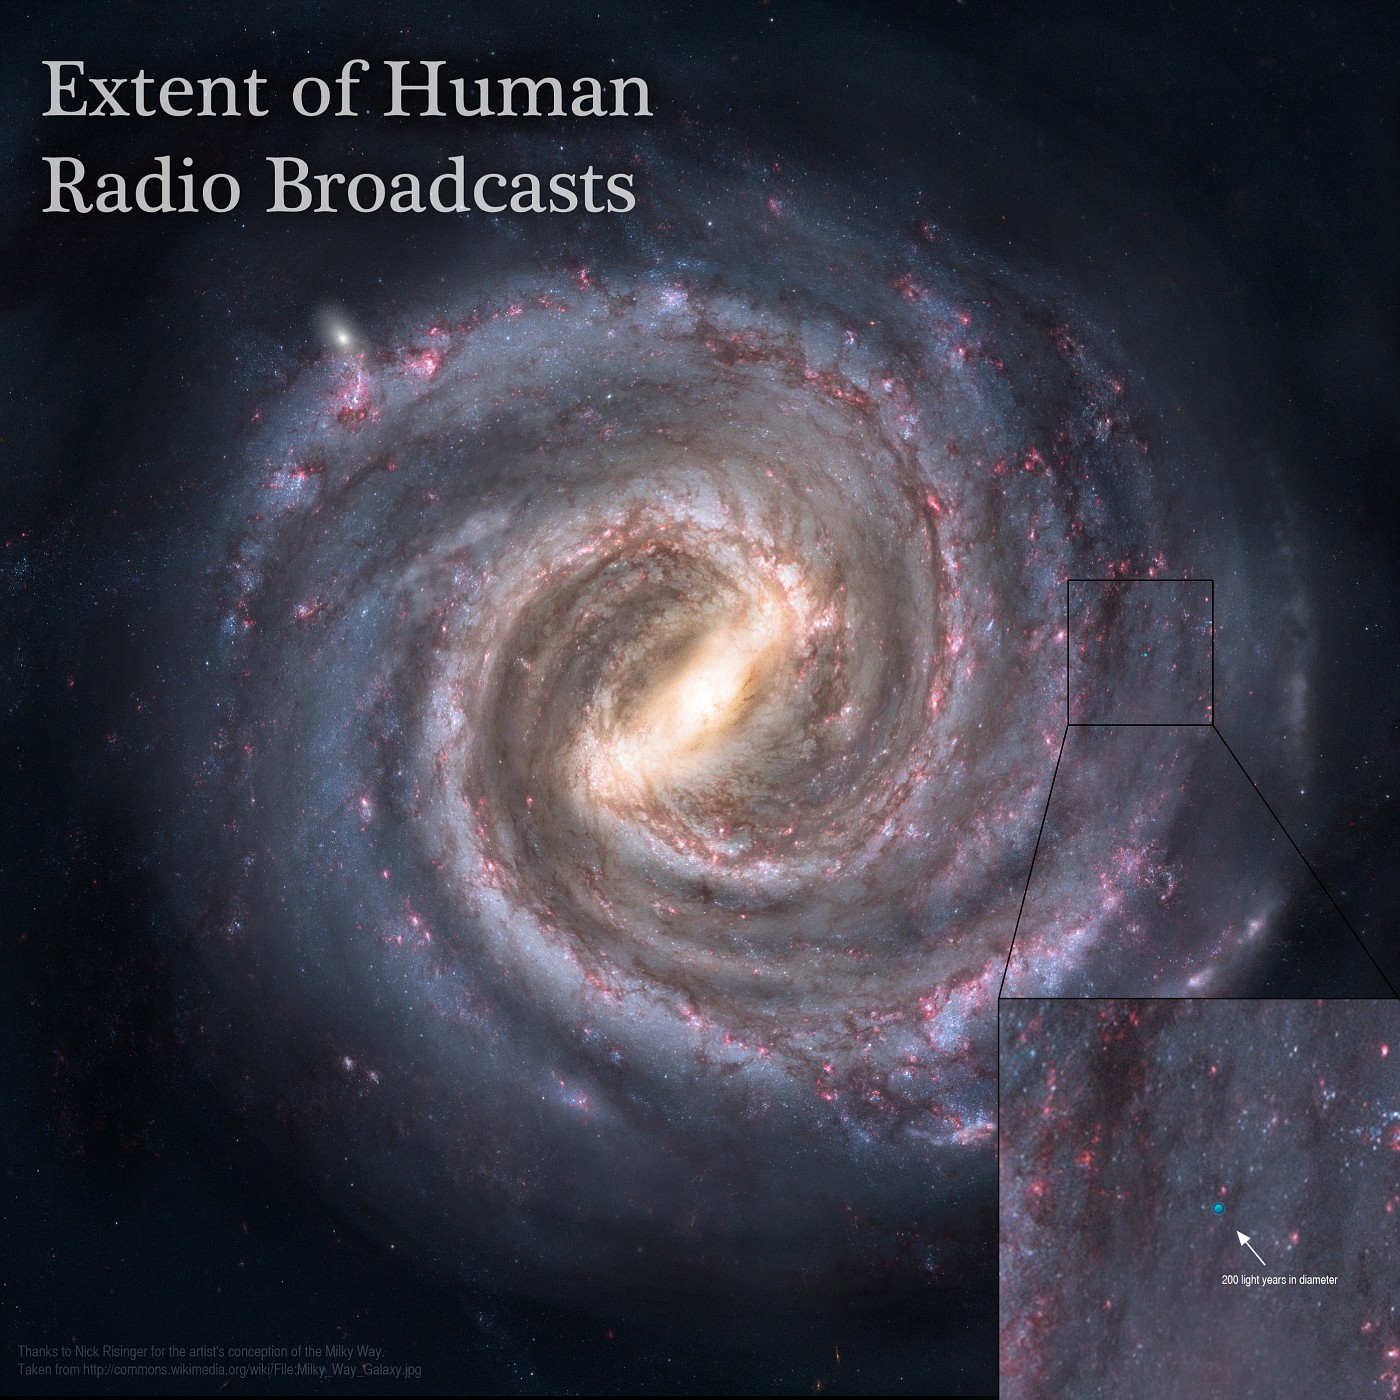 Extent of Human Radio Broadcasts / The Tiny Humanity Bubble by Adam Grossman